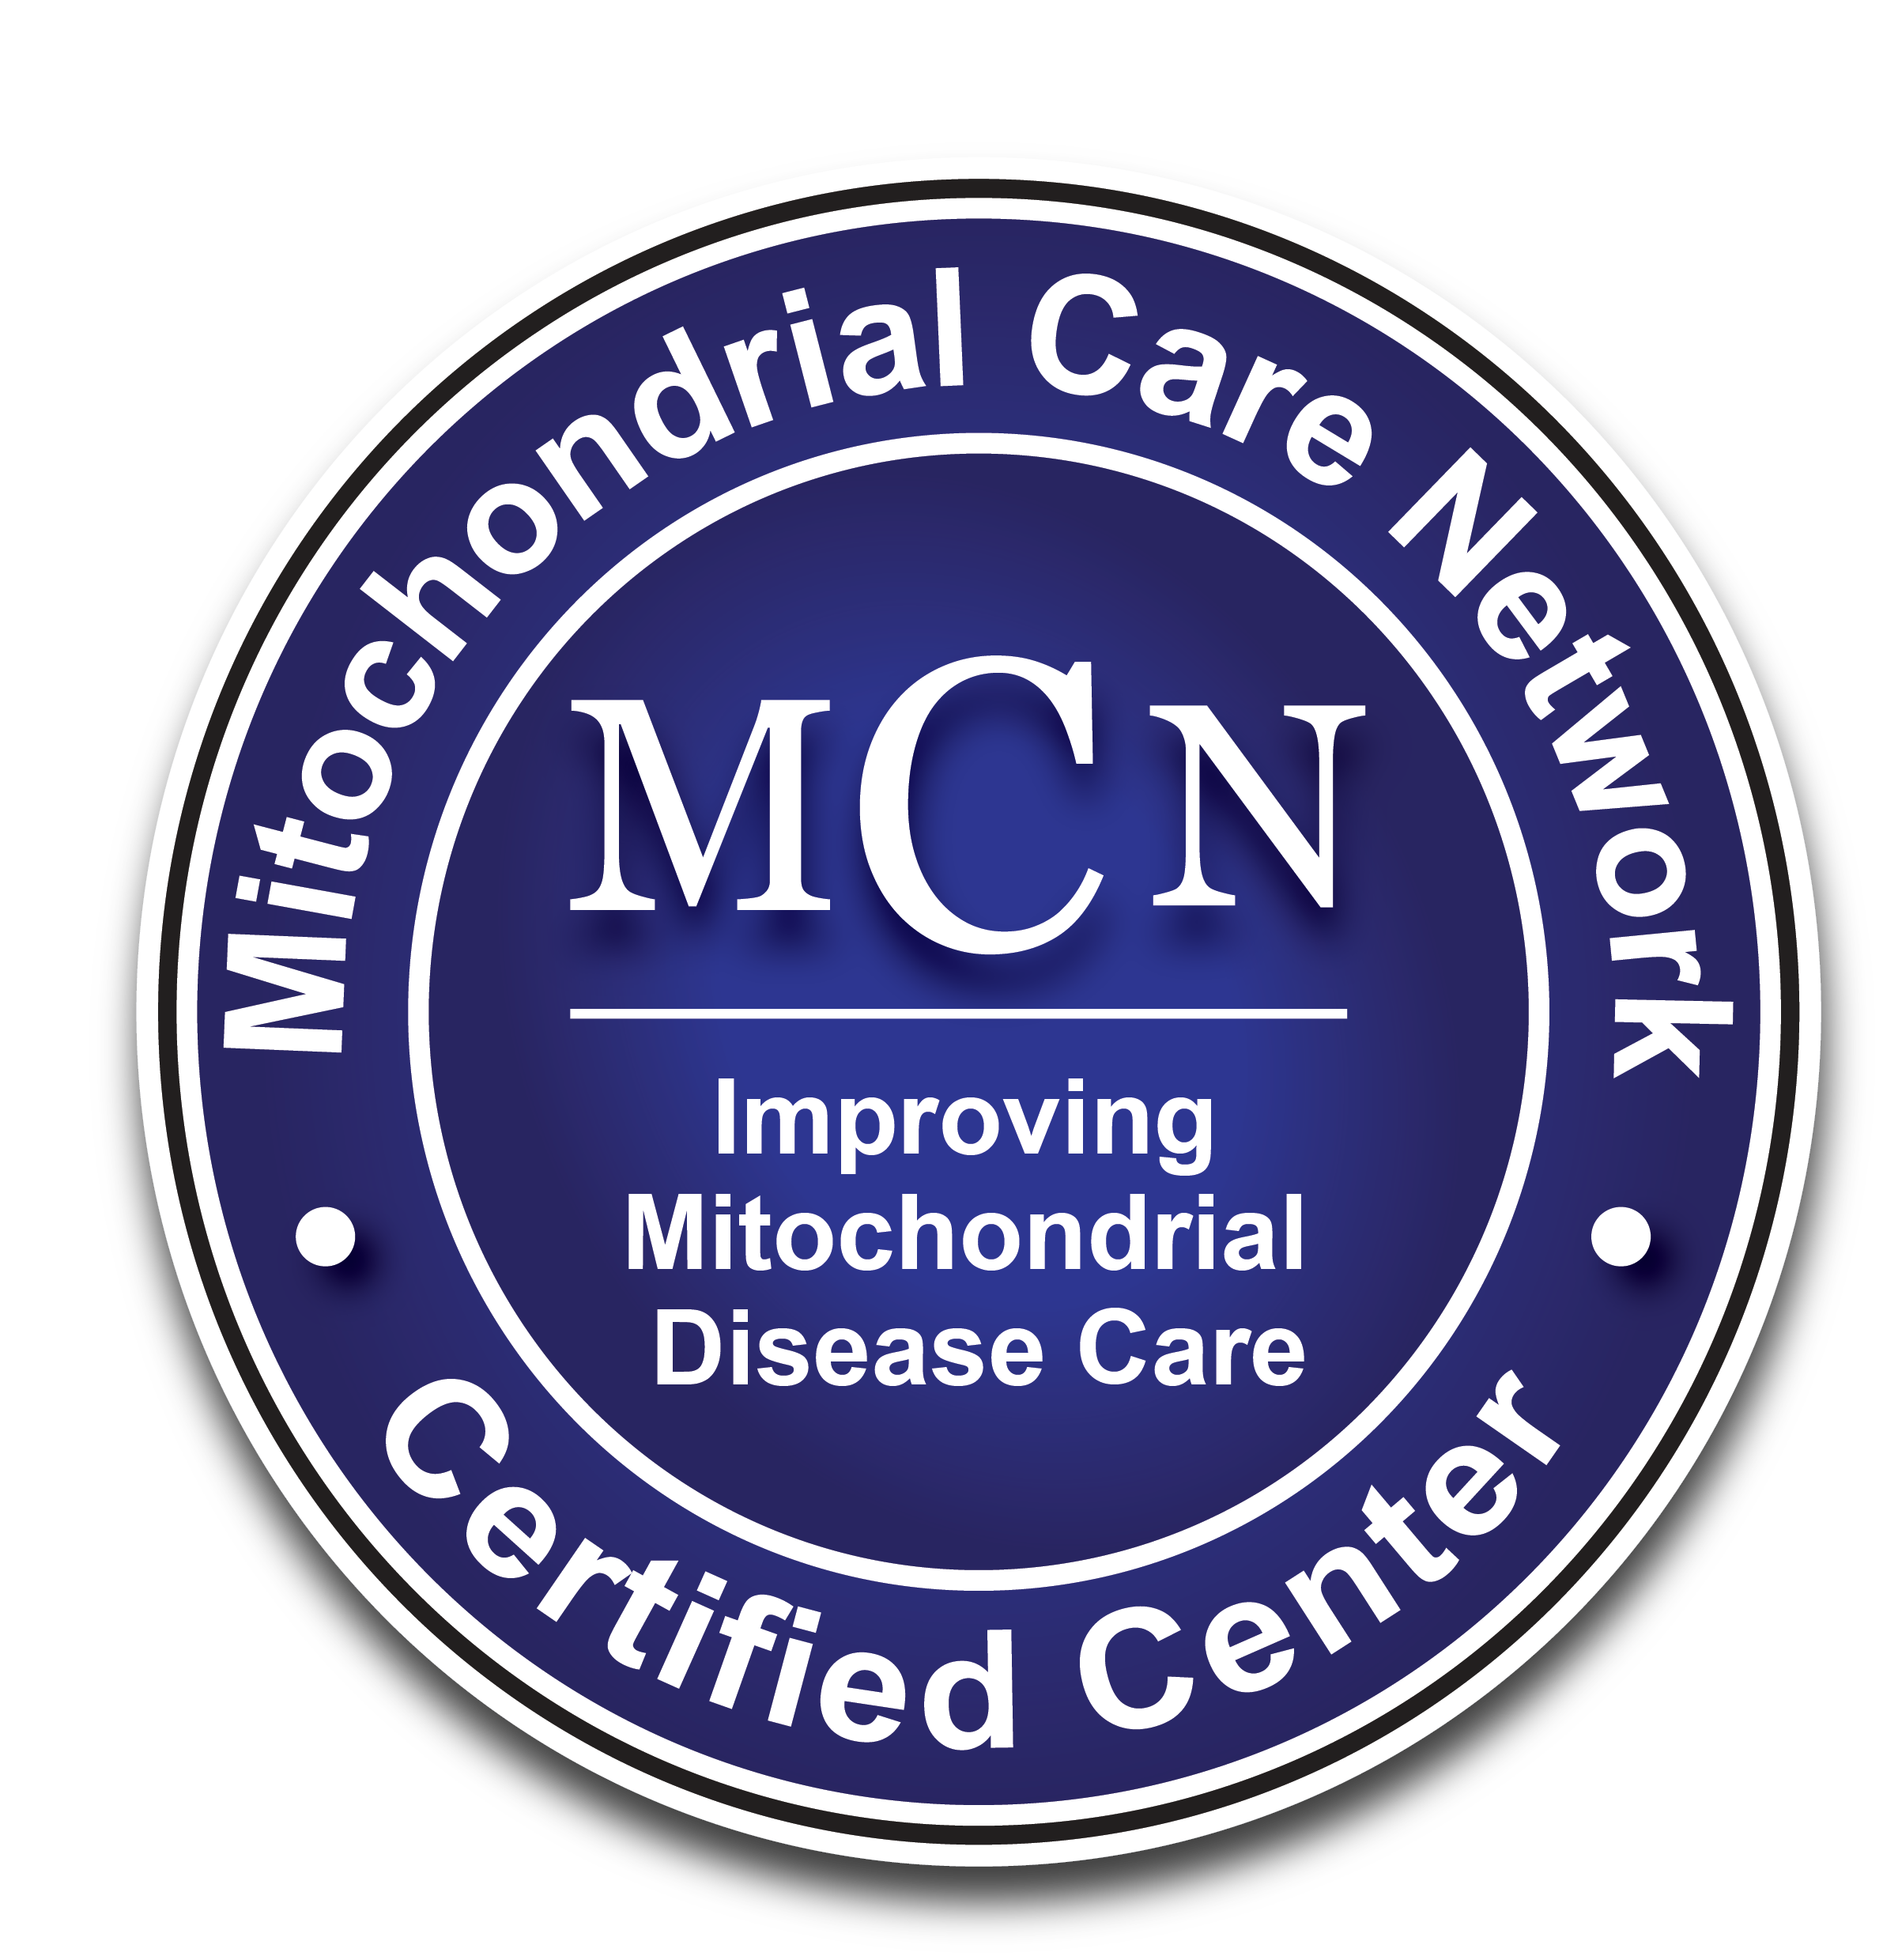 What is the Mitochondrial Care Network (MCN)? - The MCN represents a group of physicians at medical centers across the country that have expertise and experience in providing coordinated, multidisciplinary care for patients with genetic mitochondrial disease. A complete list of MCN Centers can be found here.